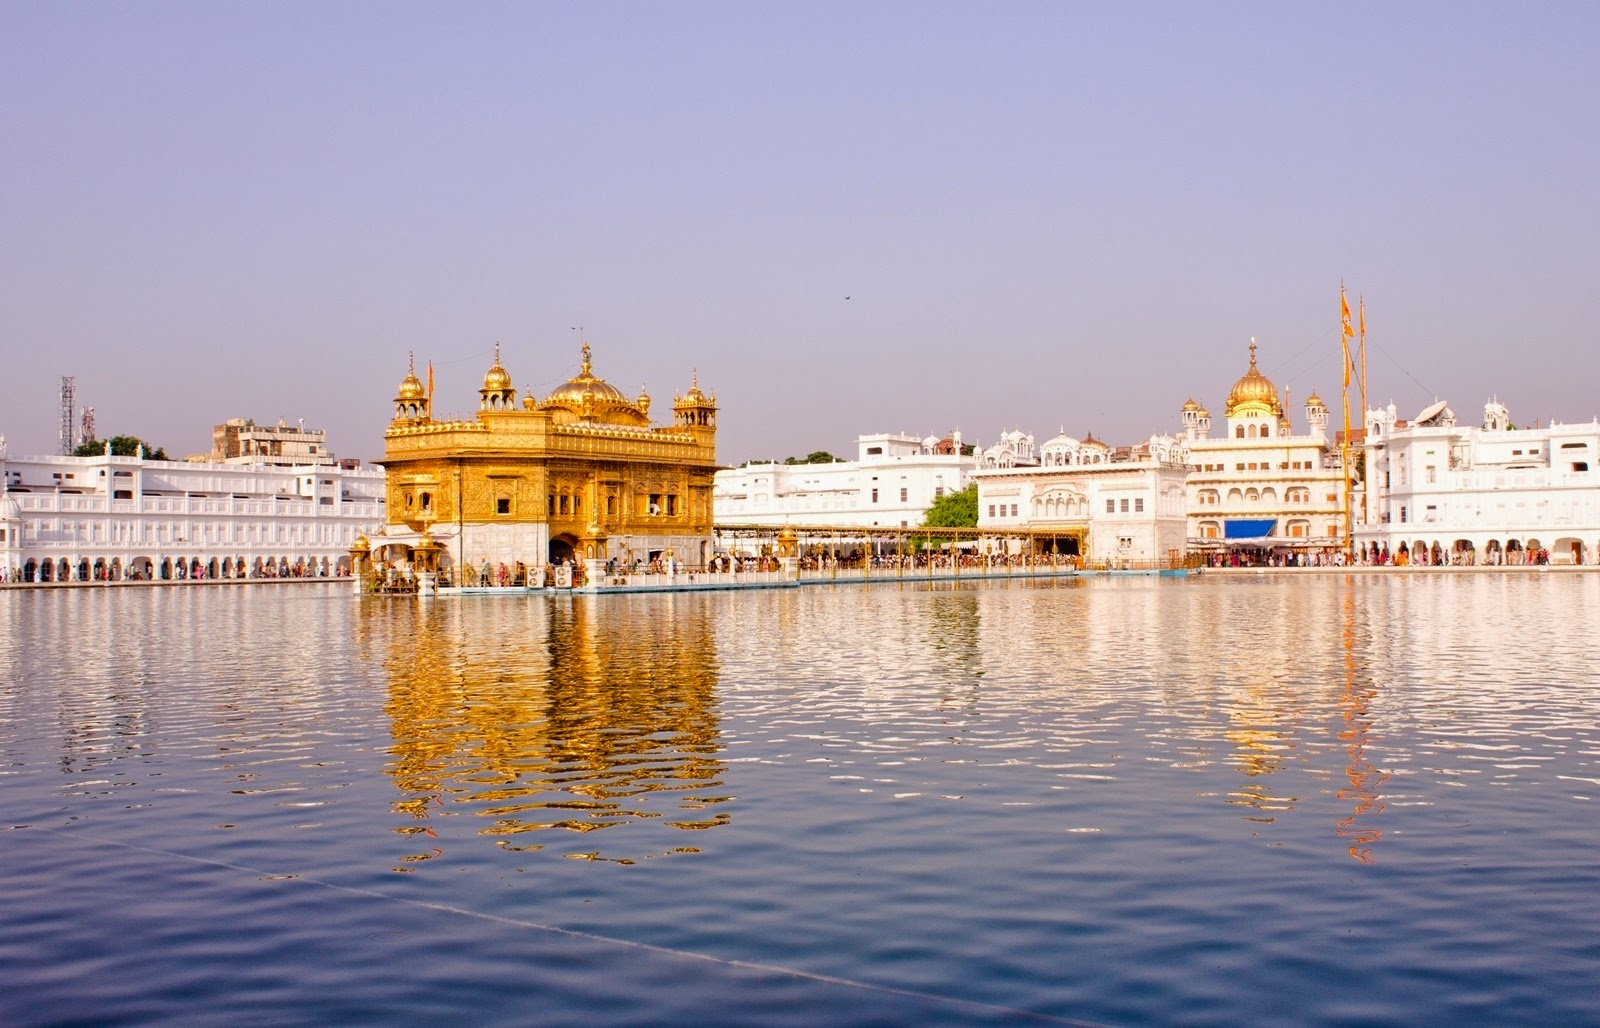 beautiful wallpapers: amritsar golden temple hd wallpapers for desktop